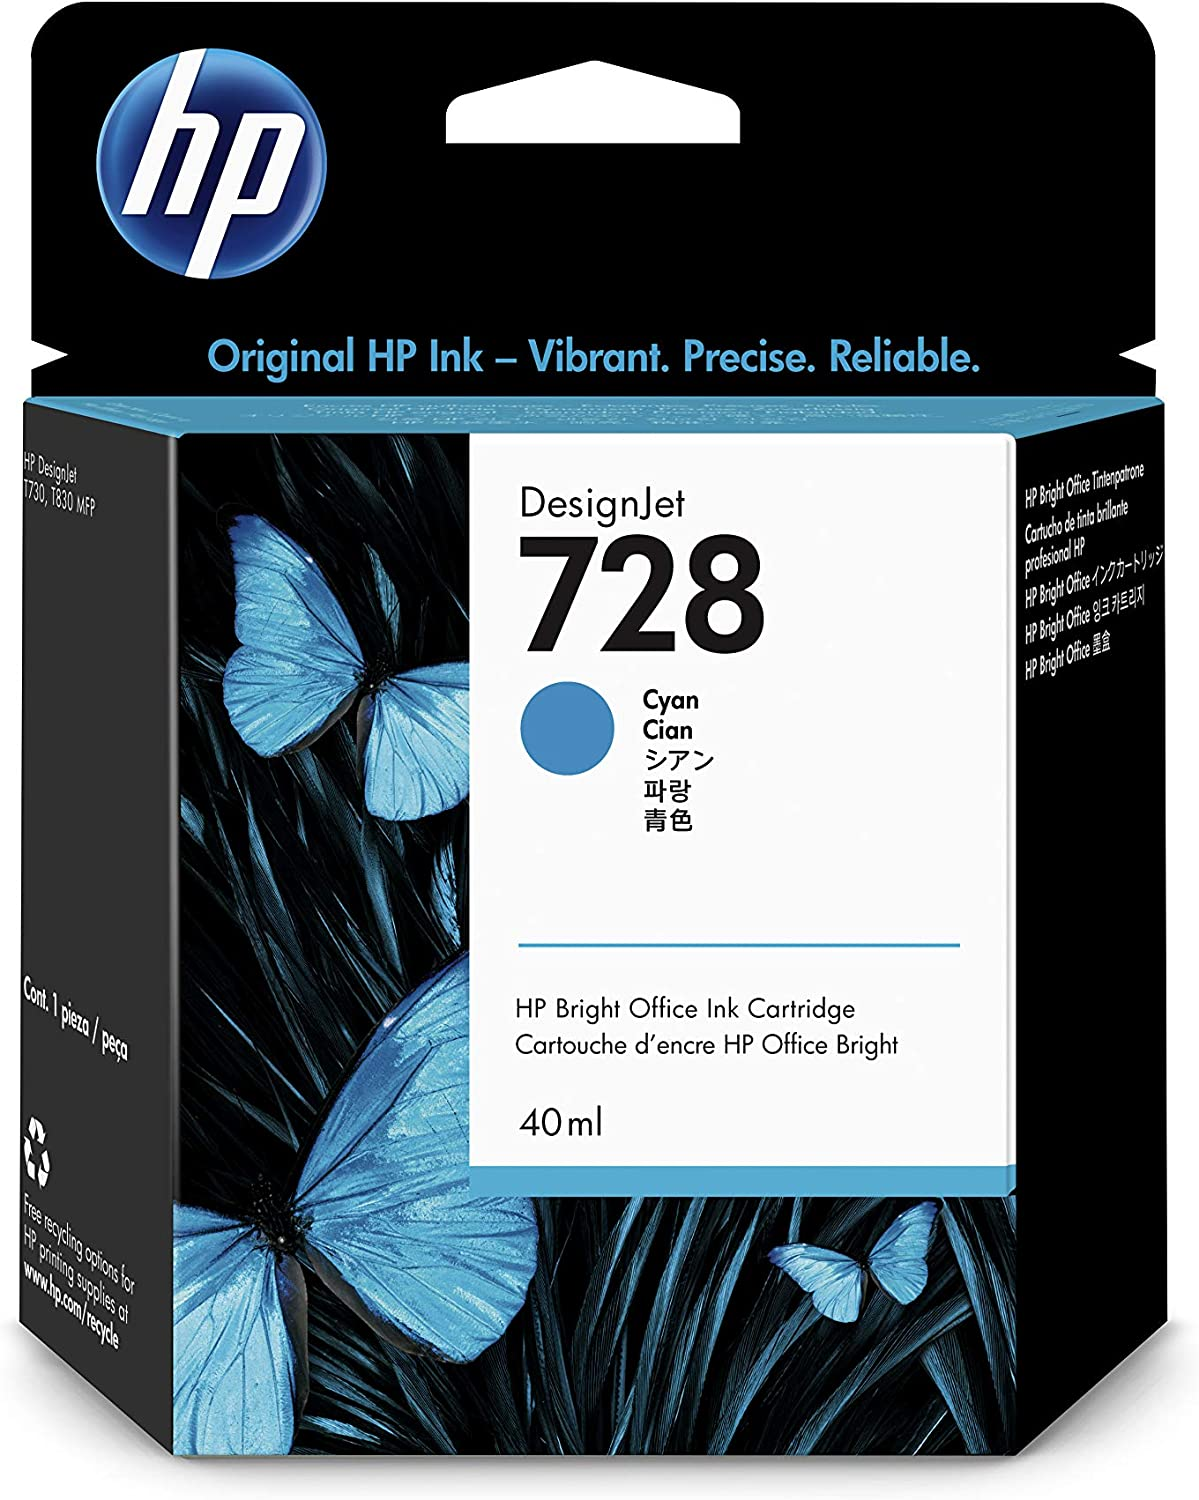 HP 728 Cyan 40-ml Genuine Ink Cartridge (F9J63A) for DesignJet T830 MFP & T730 Large Format Plotter Printers